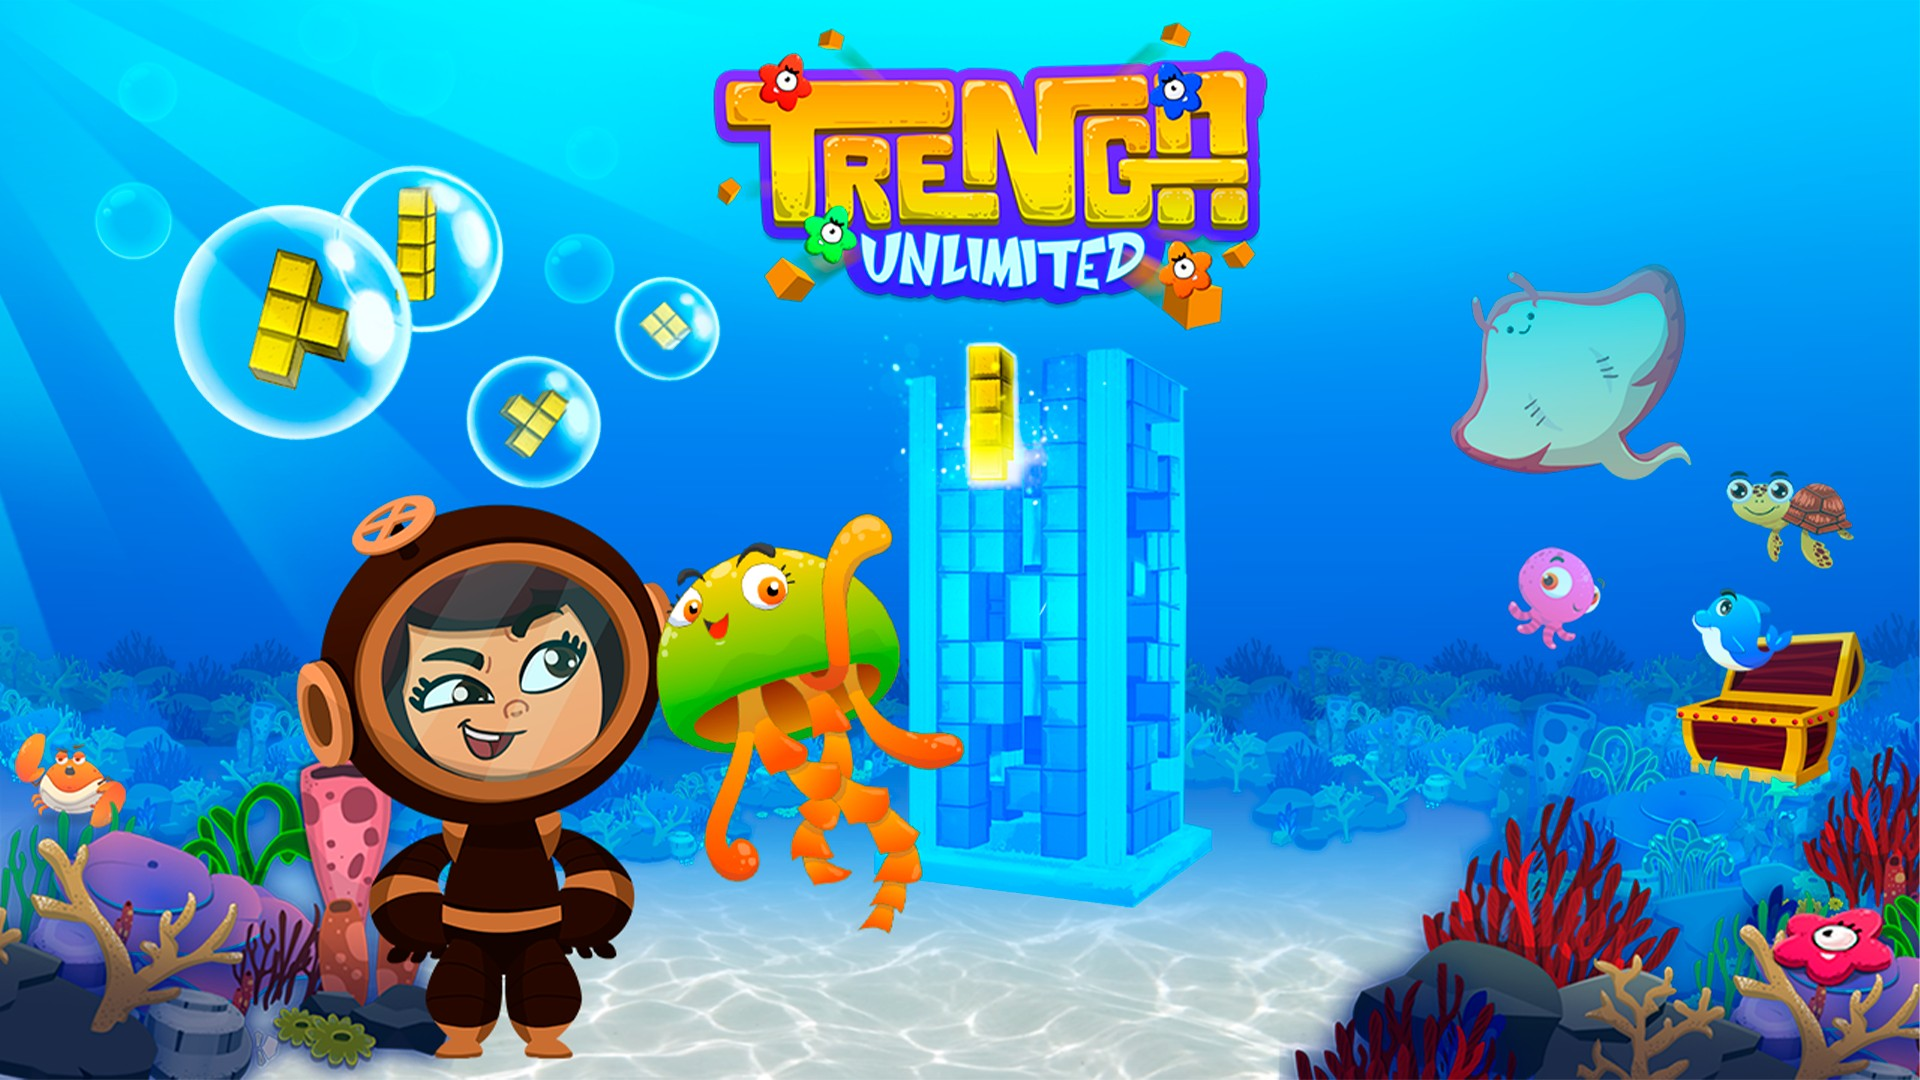 Video For Puzzle Game Trenga Unlimited Available Now for Xbox One and Xbox Series X|S